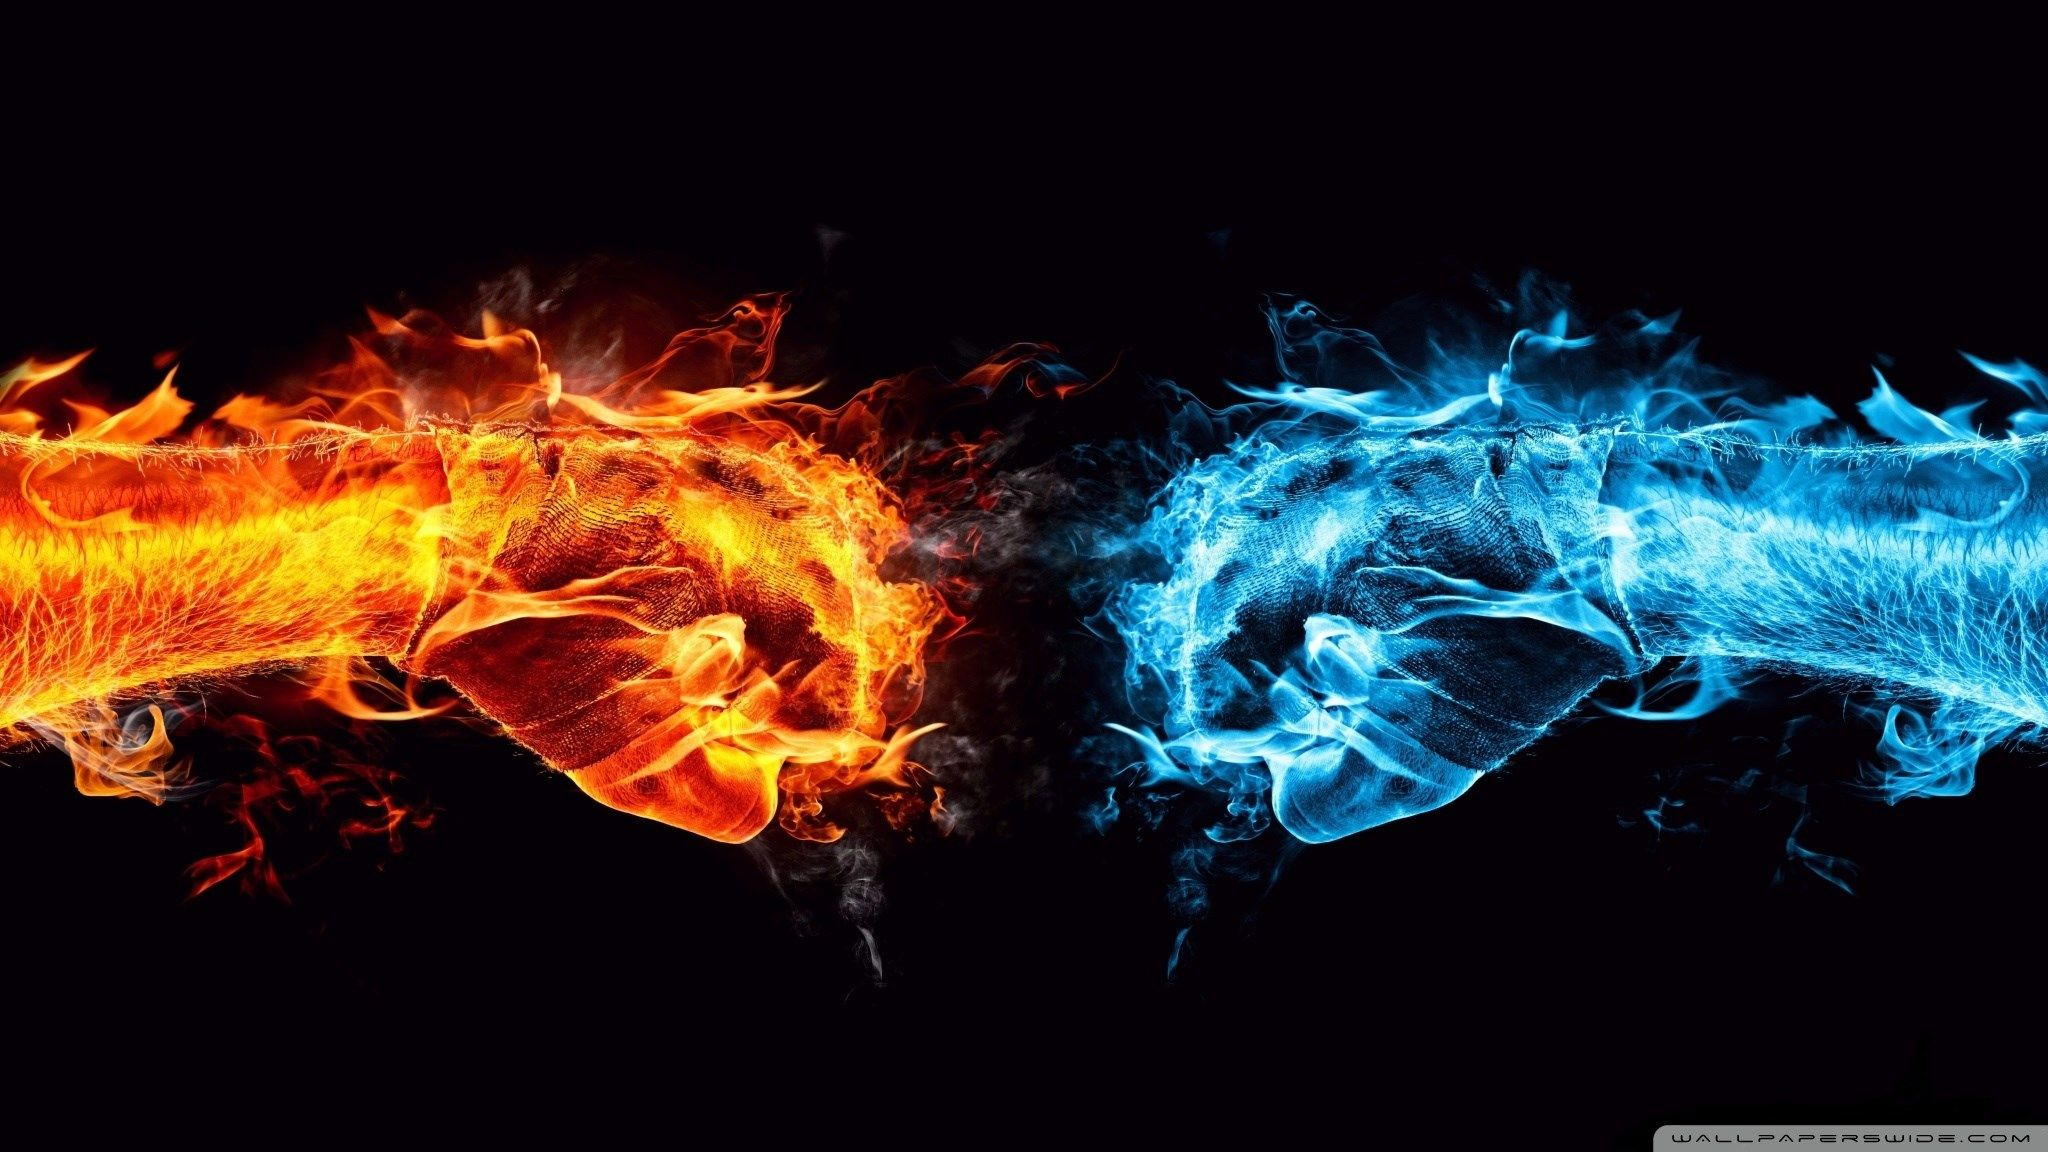 fire and ice wallpaper for desktop background 2048x1152 359 kB